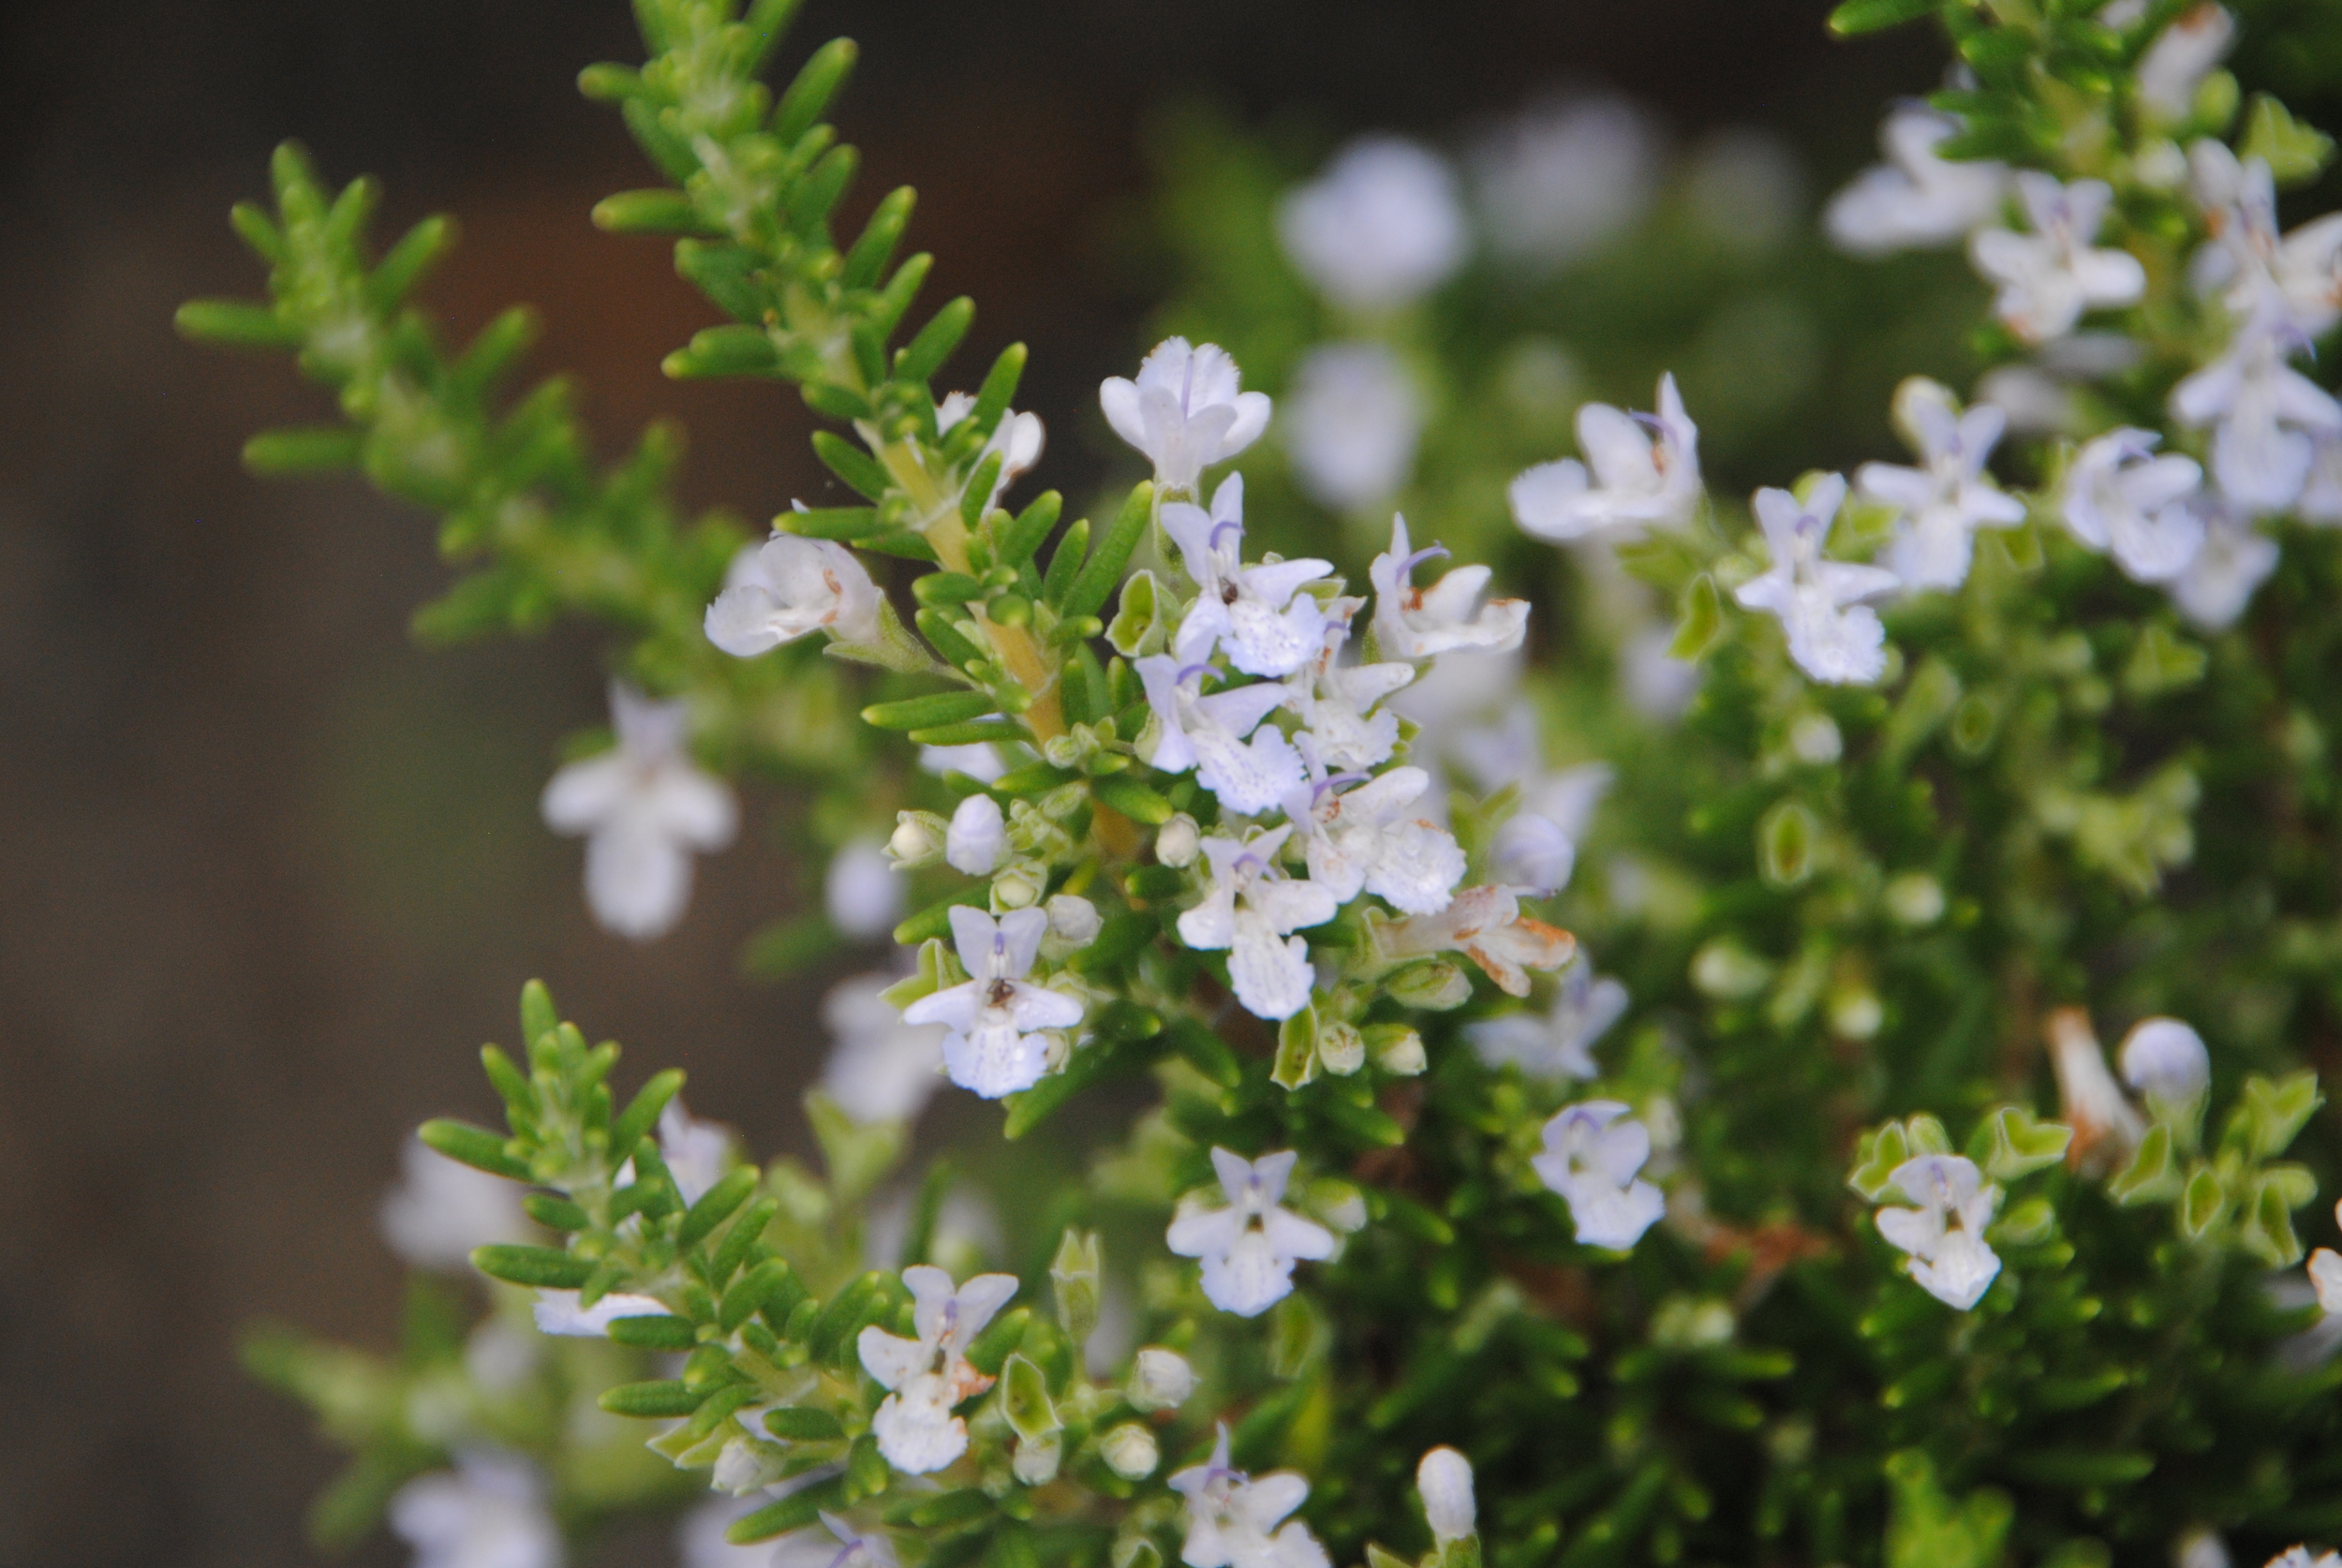 Tiny leaves add a dwarf conifer-like texture and have the typical fresh aroma of rosemary.